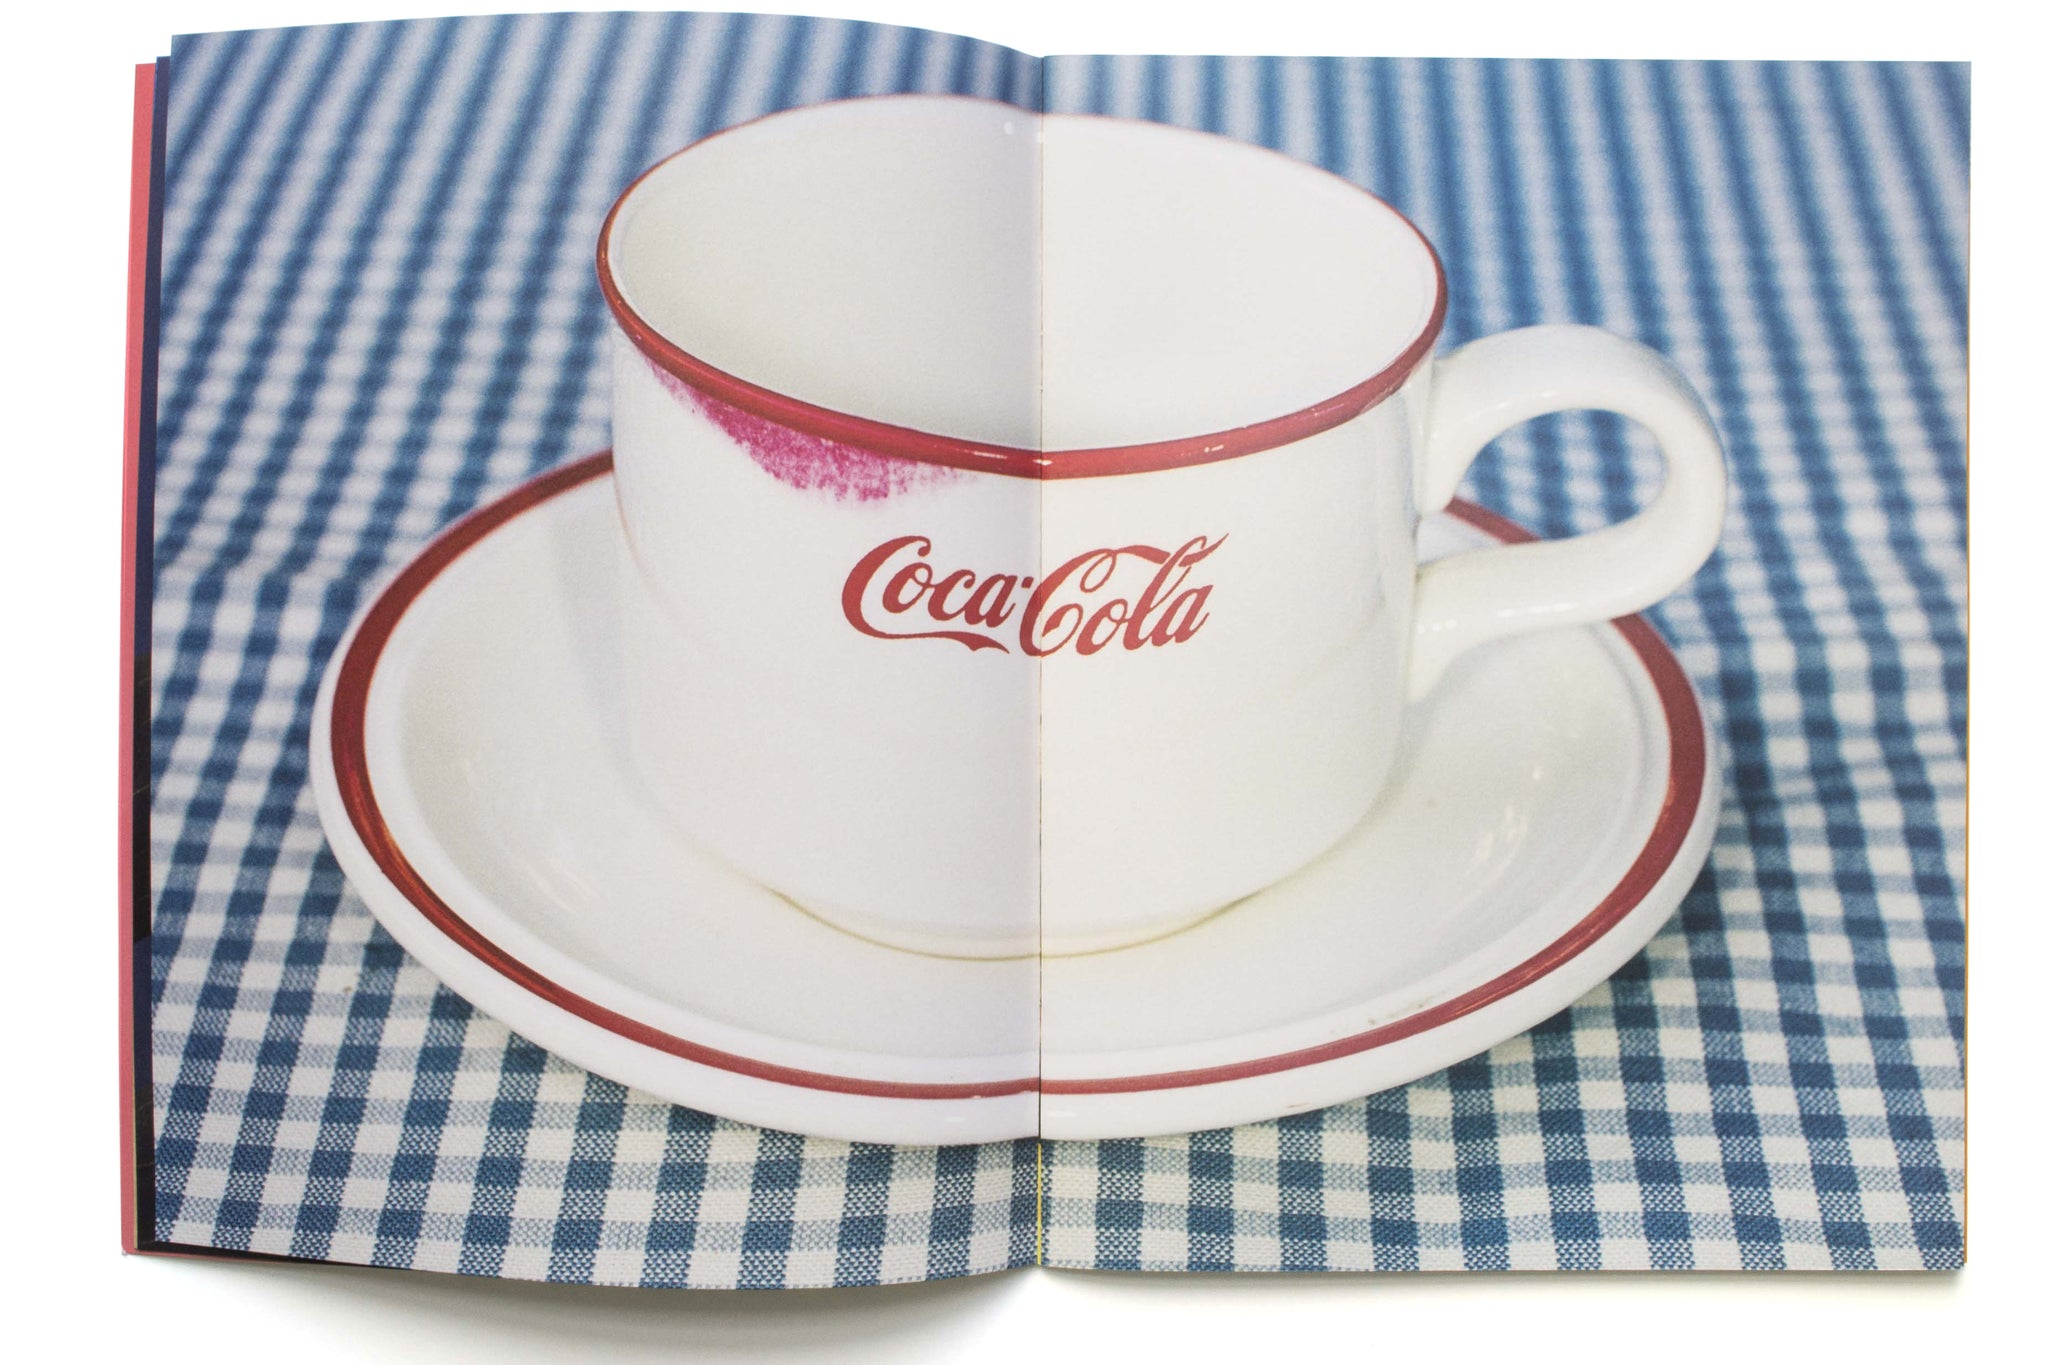 Toilet Paper Martin Parr Magazine - Collector's Edition